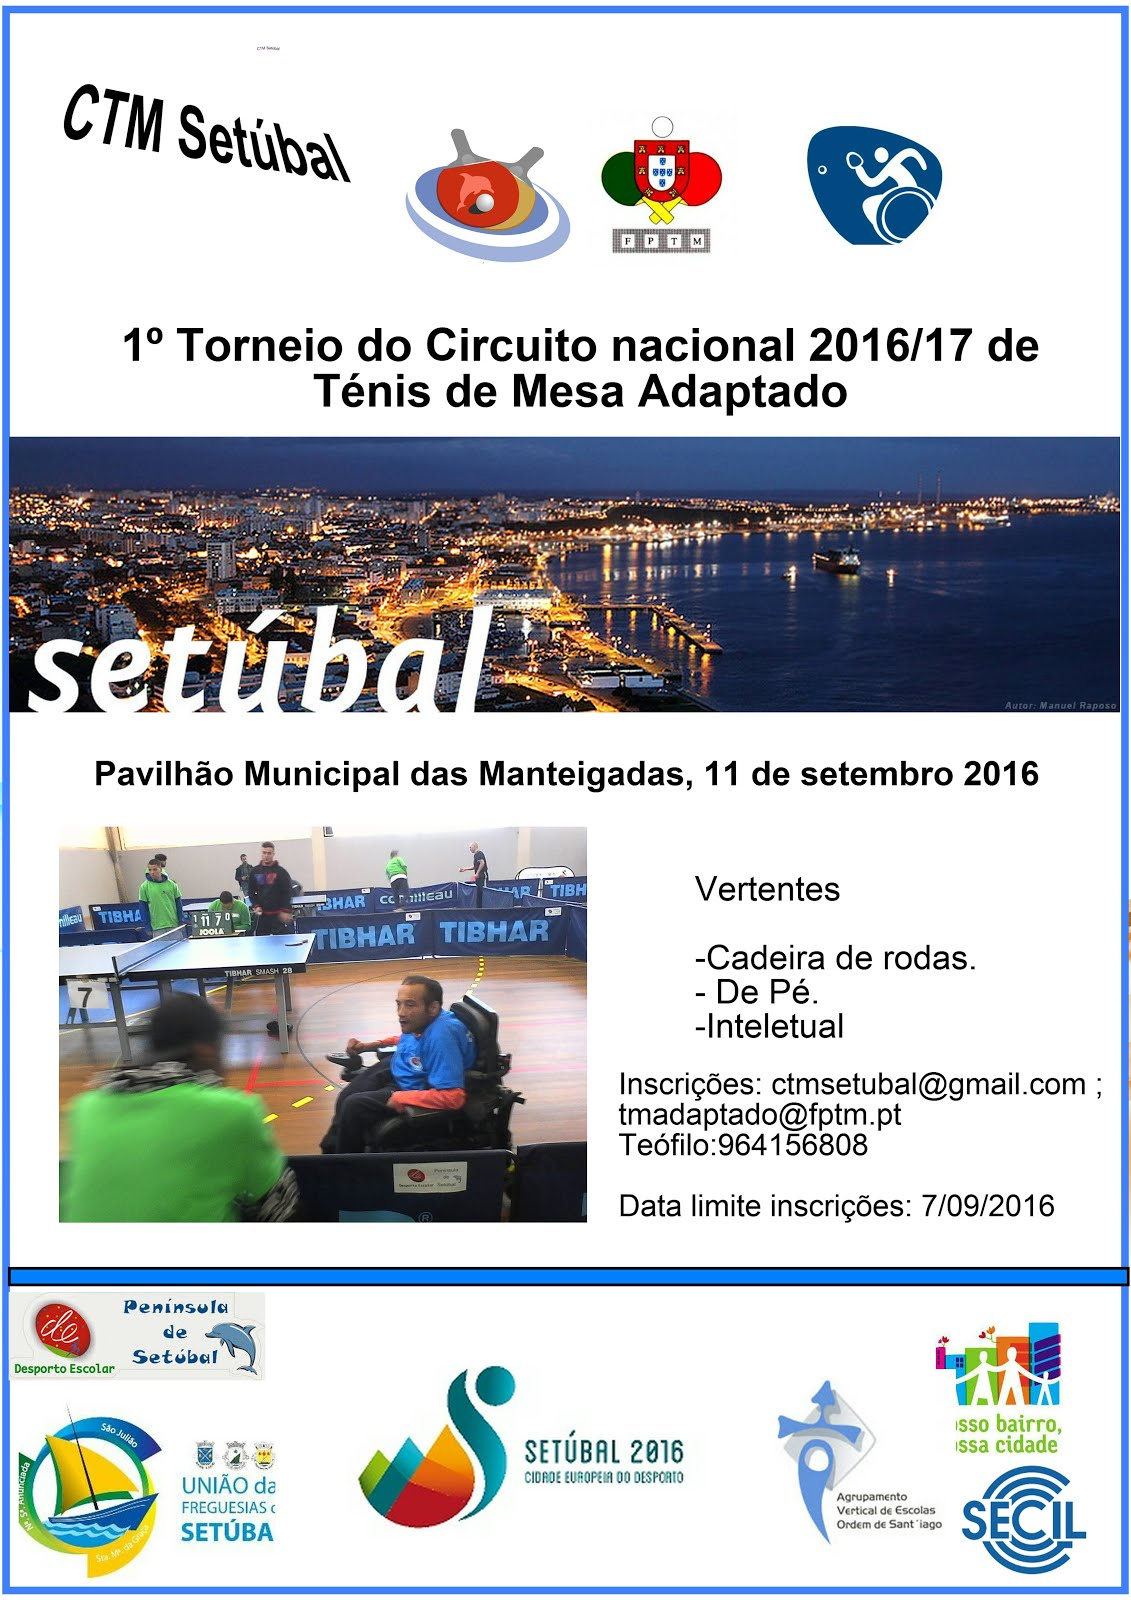 1ºtorneio do circuito nacional TM adaptado 2016/17